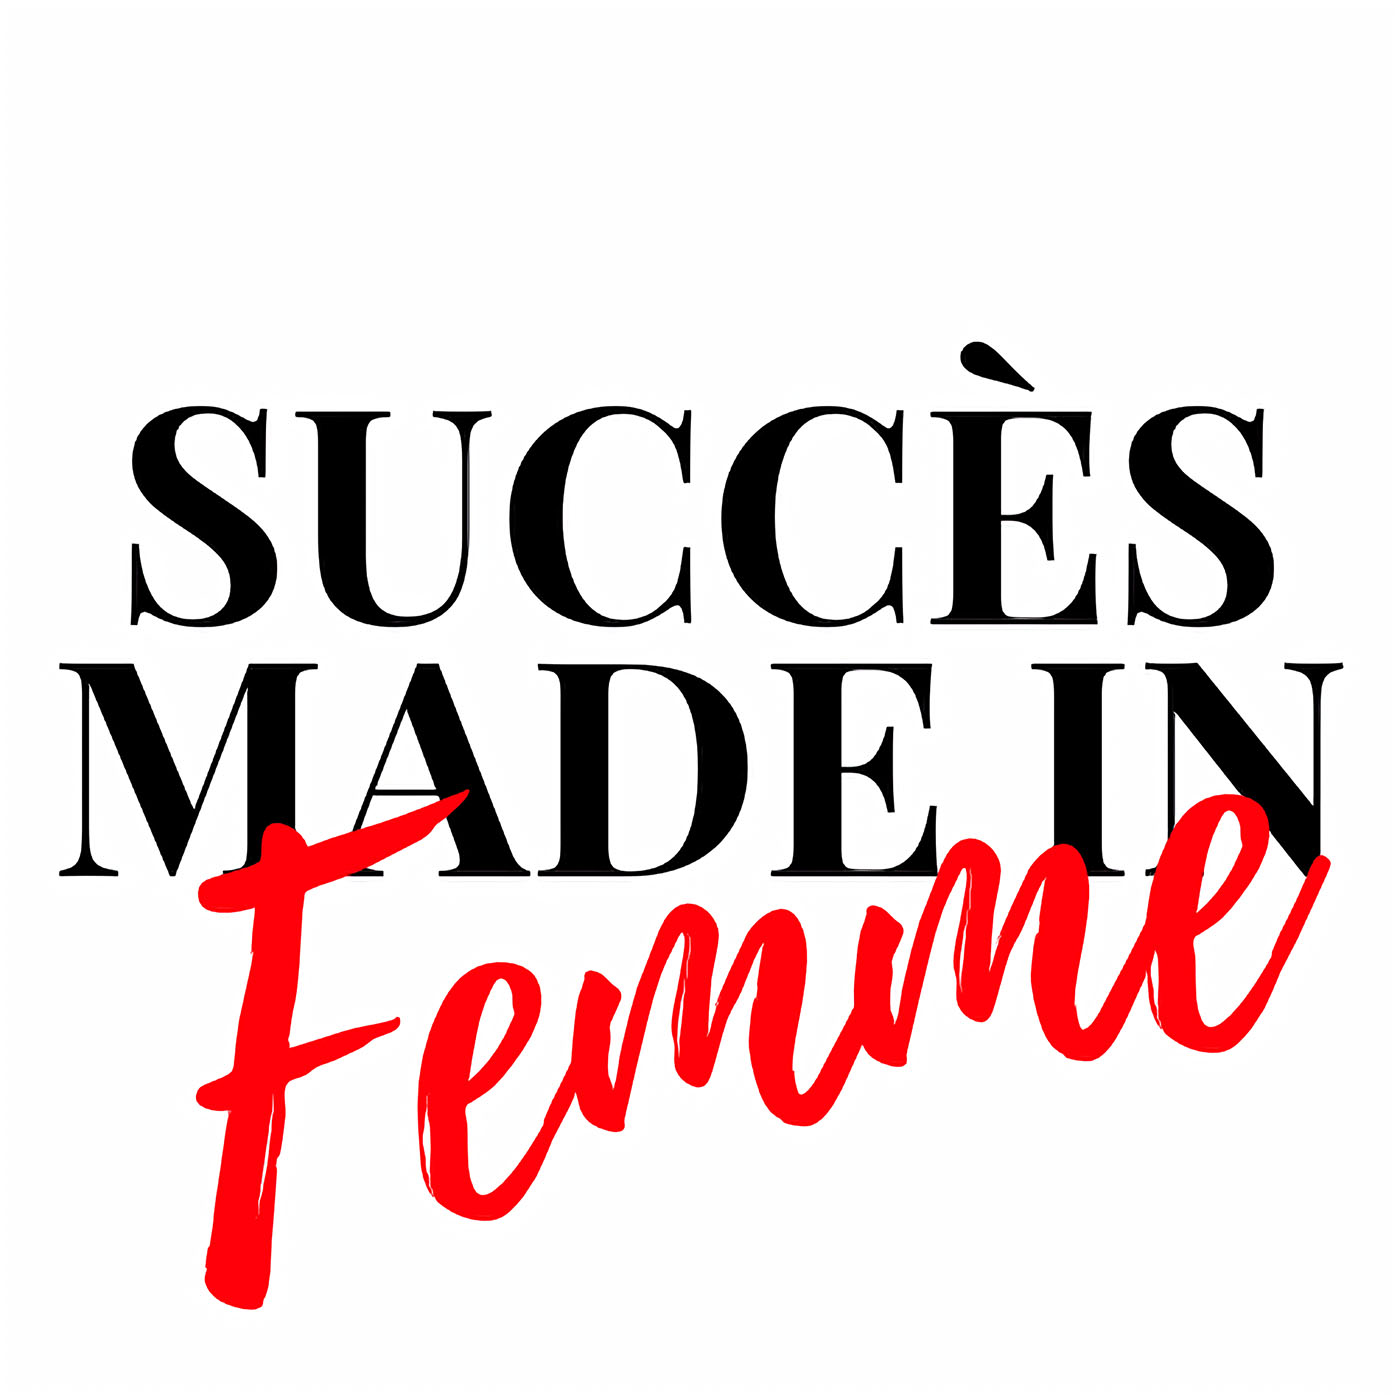 Succes Made In Femme Le podcast podcast show image